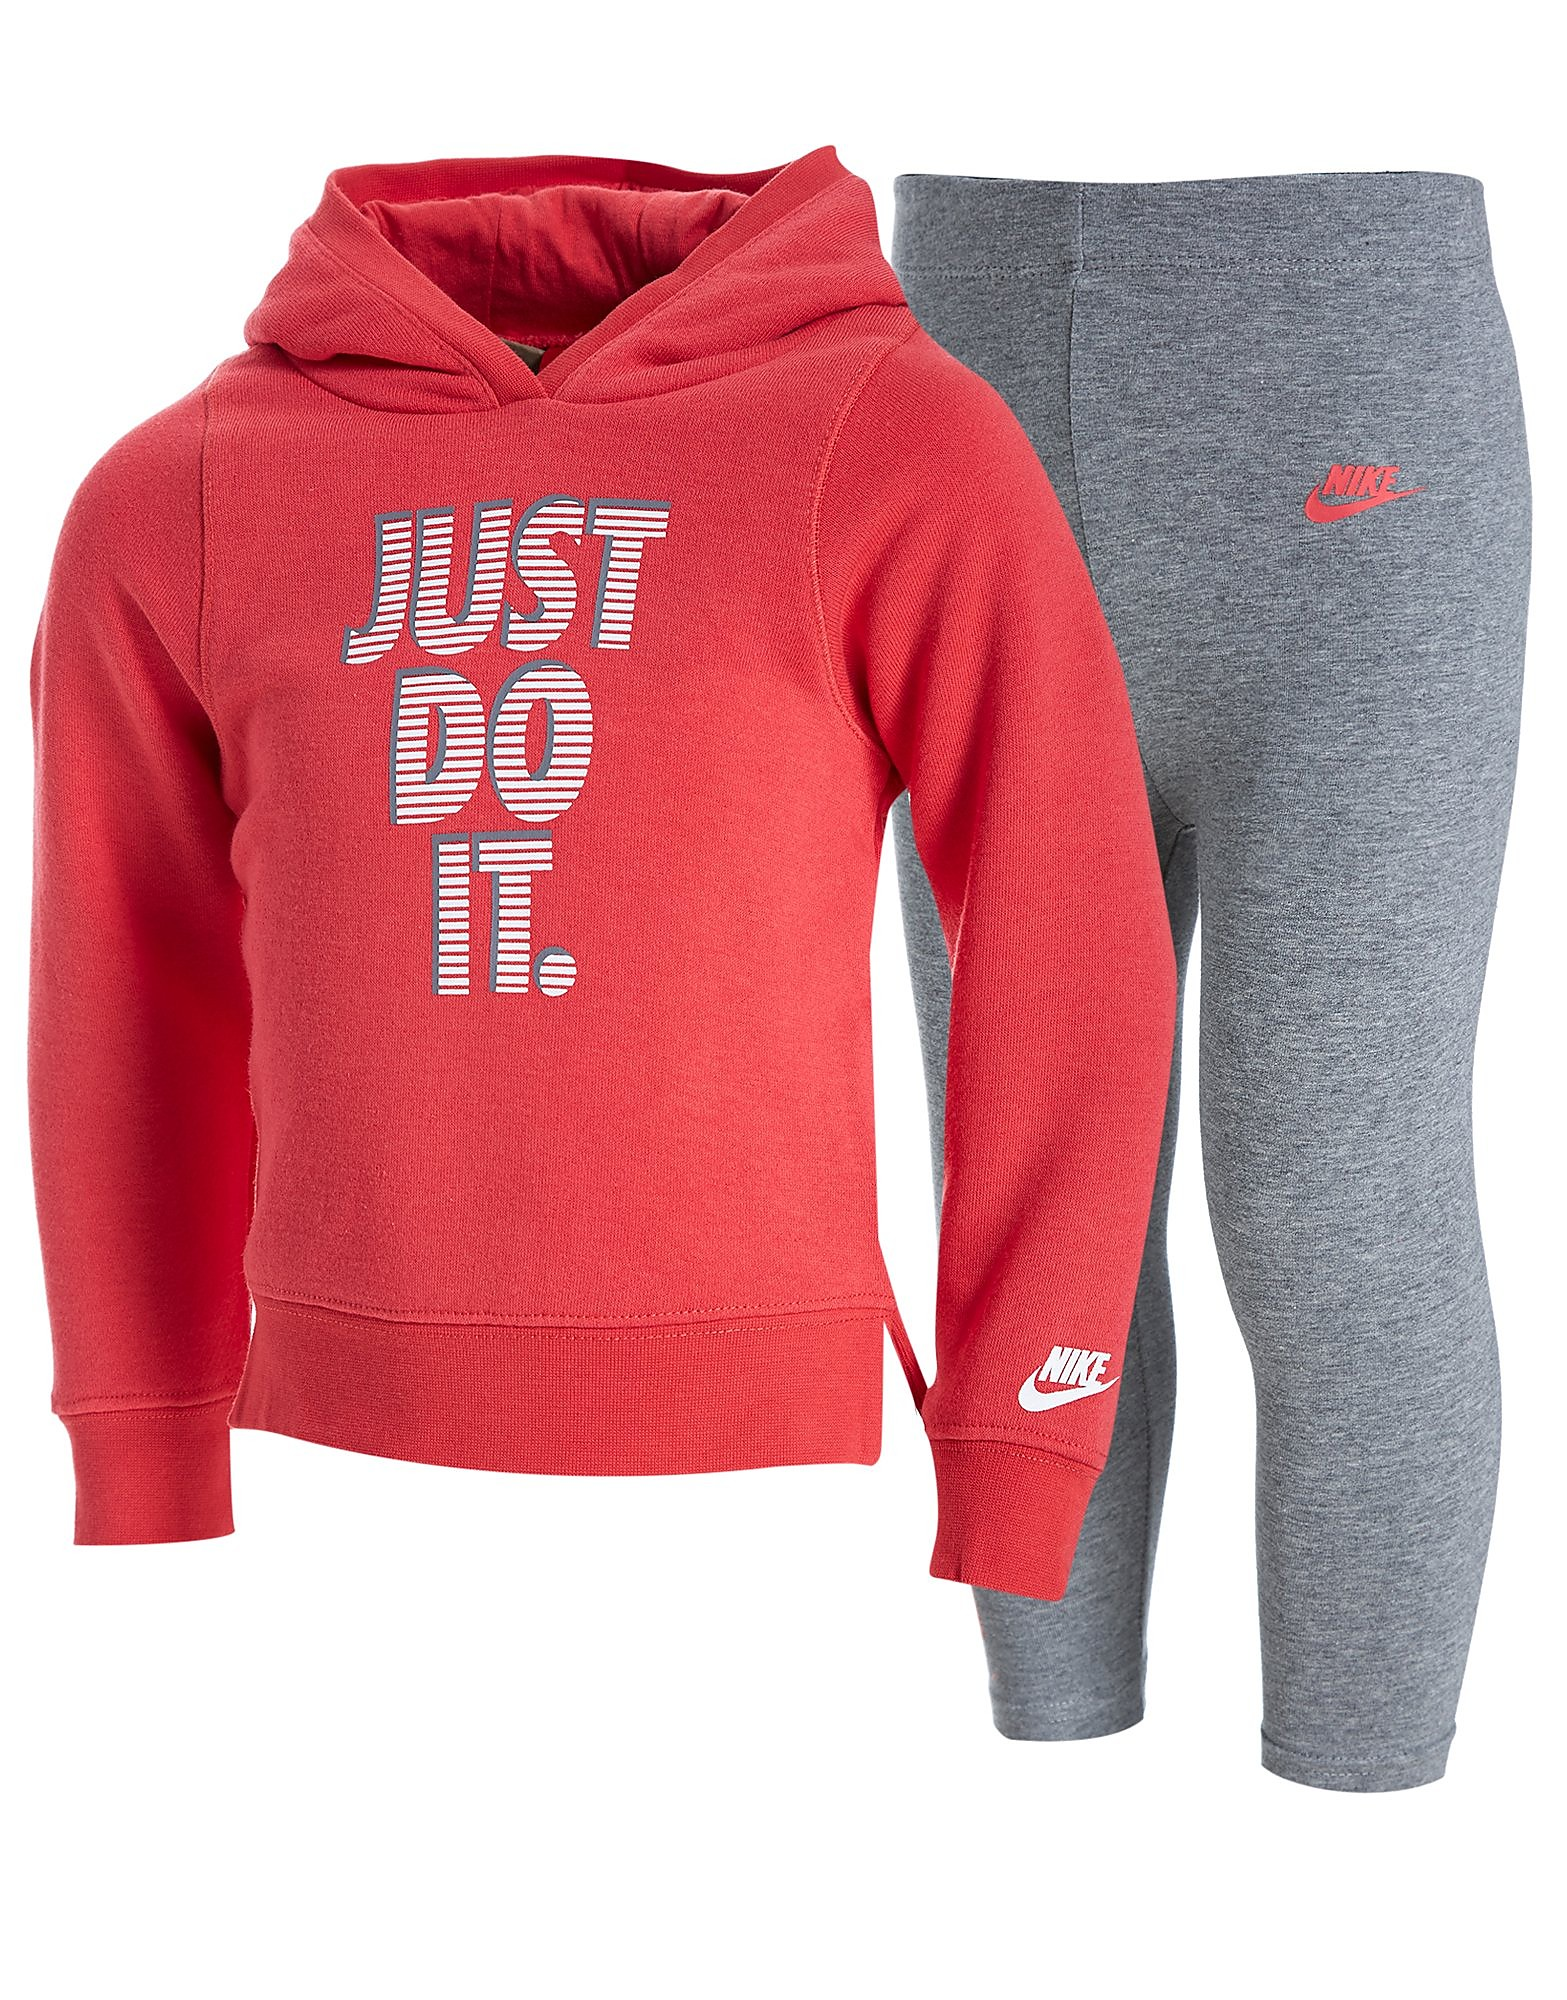 Nike Girls' Just Do It Hoodie/ Leggings Set Infant